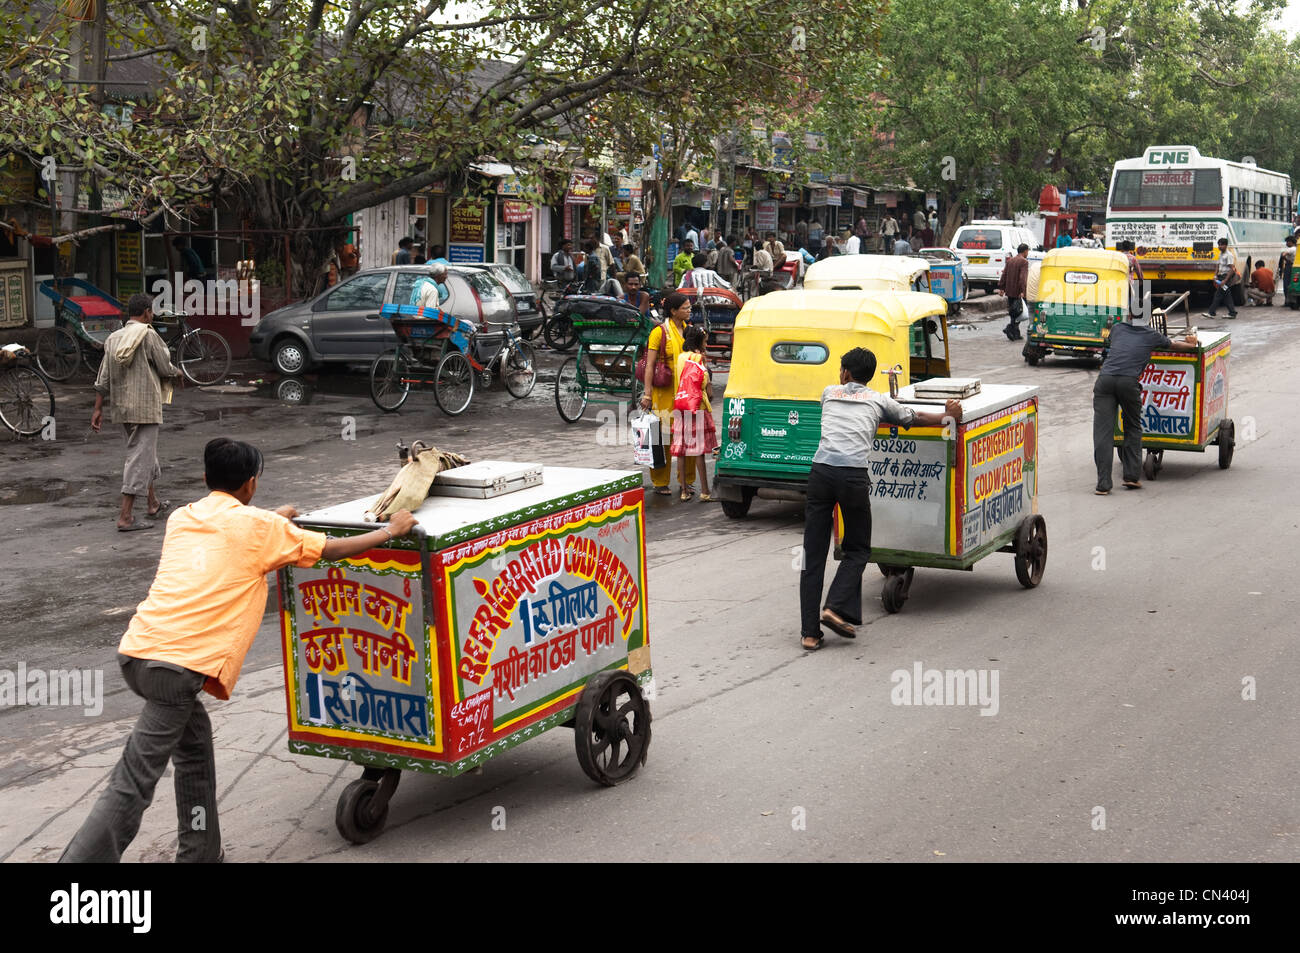 Busy street in India - Stock Image